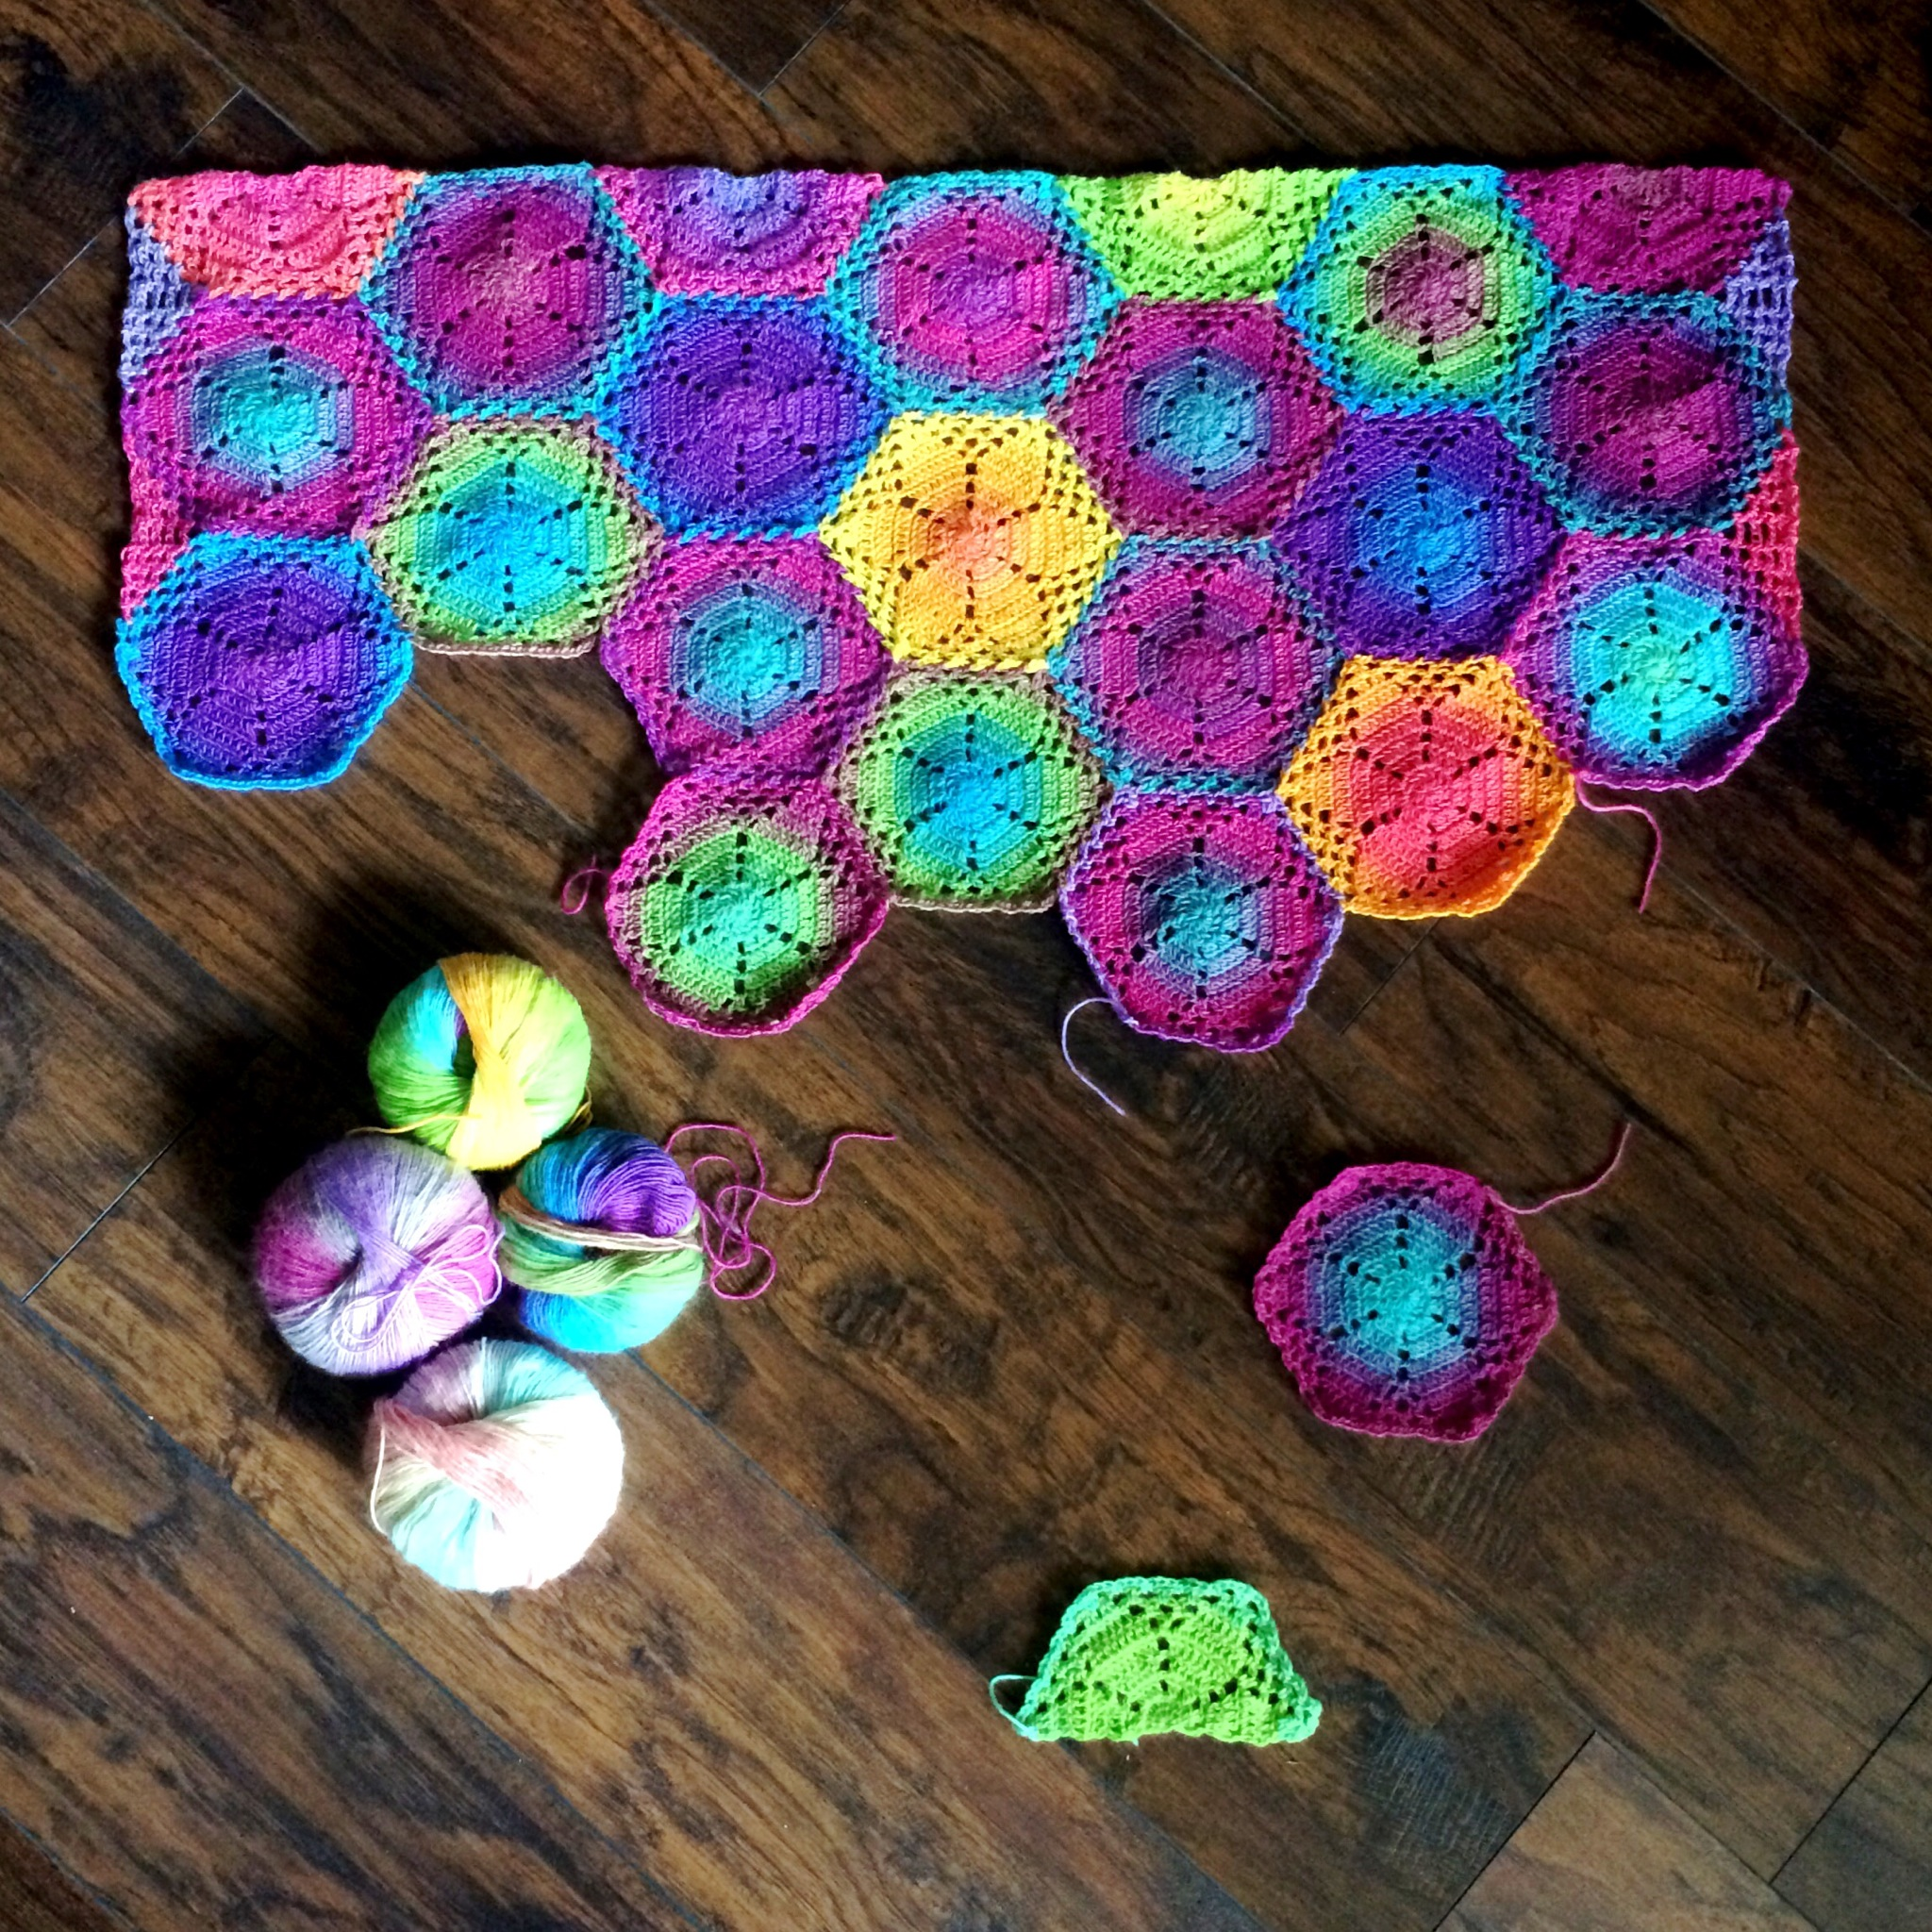 """Celeste"" Flower lace hexagon blanket/shawl"